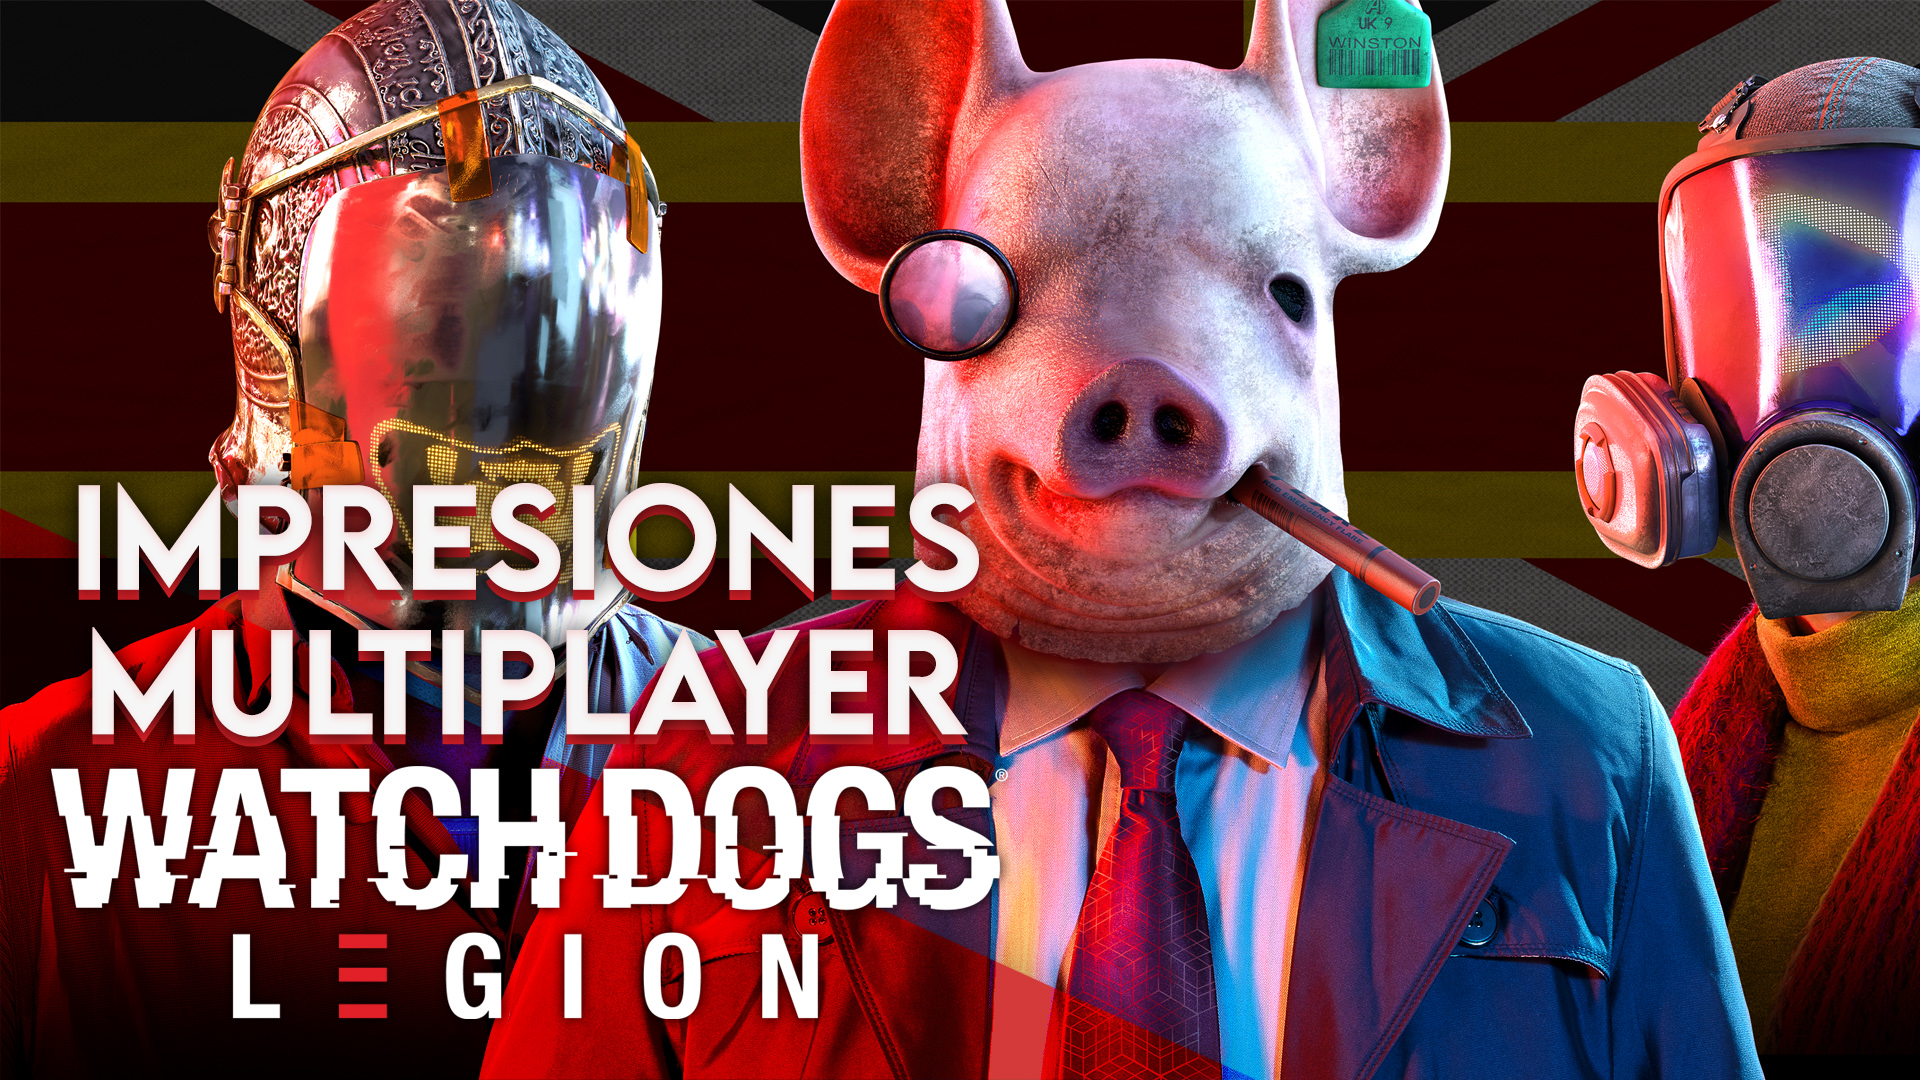 Impresiones Multiplayer Watch Dogs: Legion